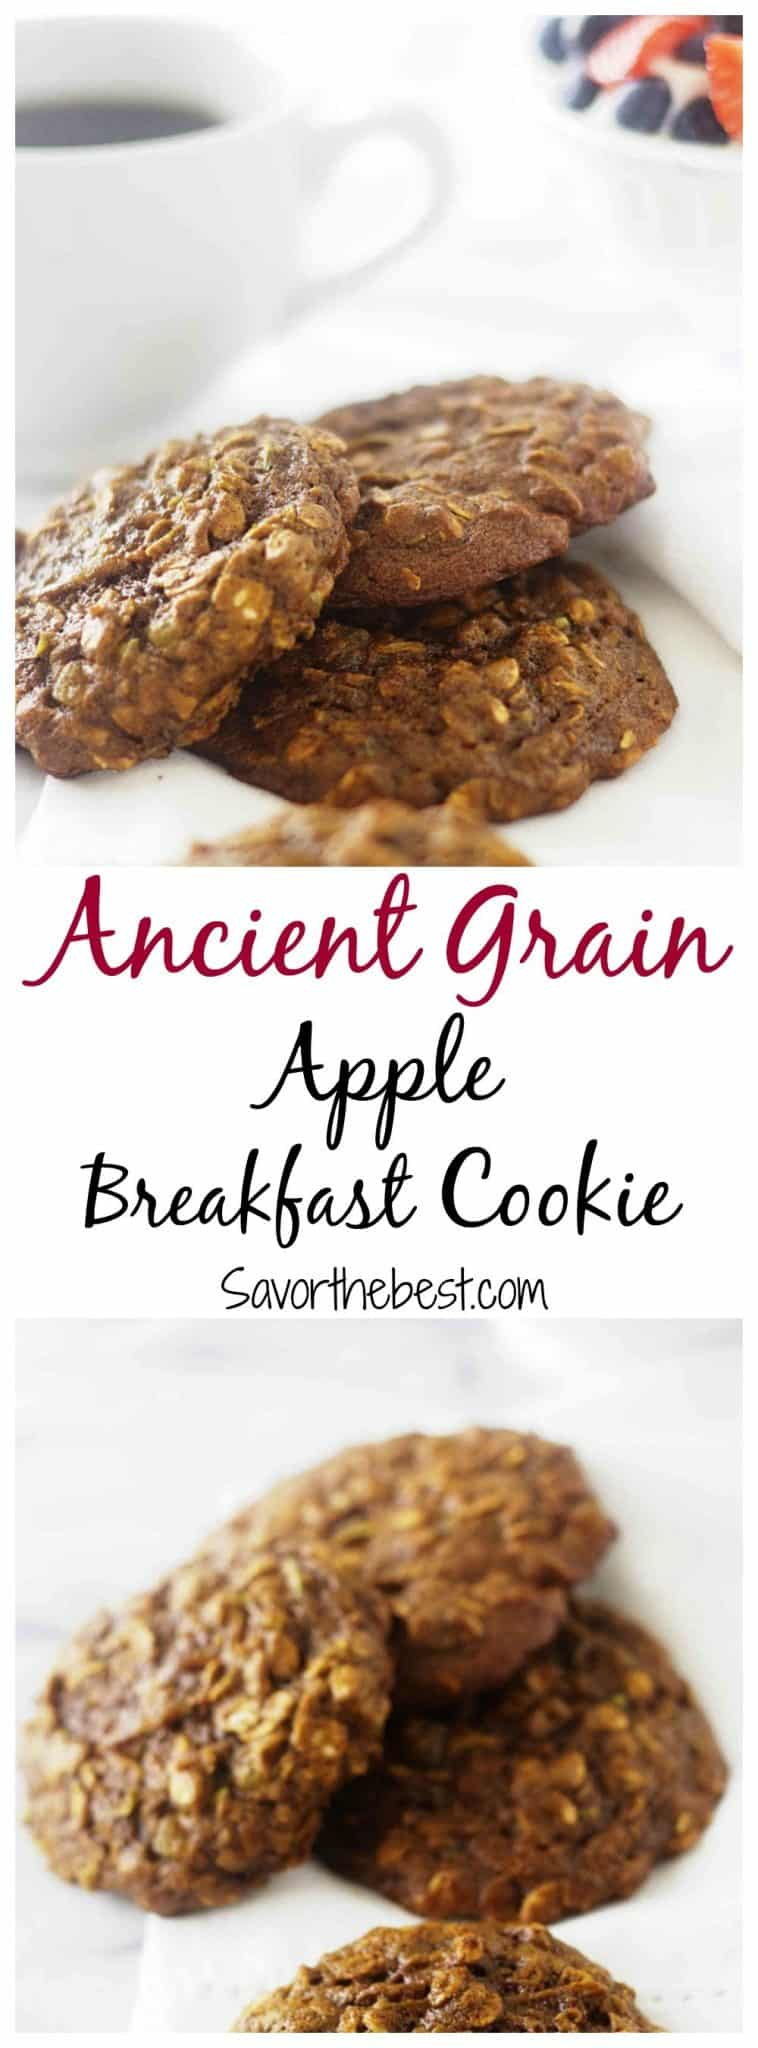 ancient grain apple breakfast cooke